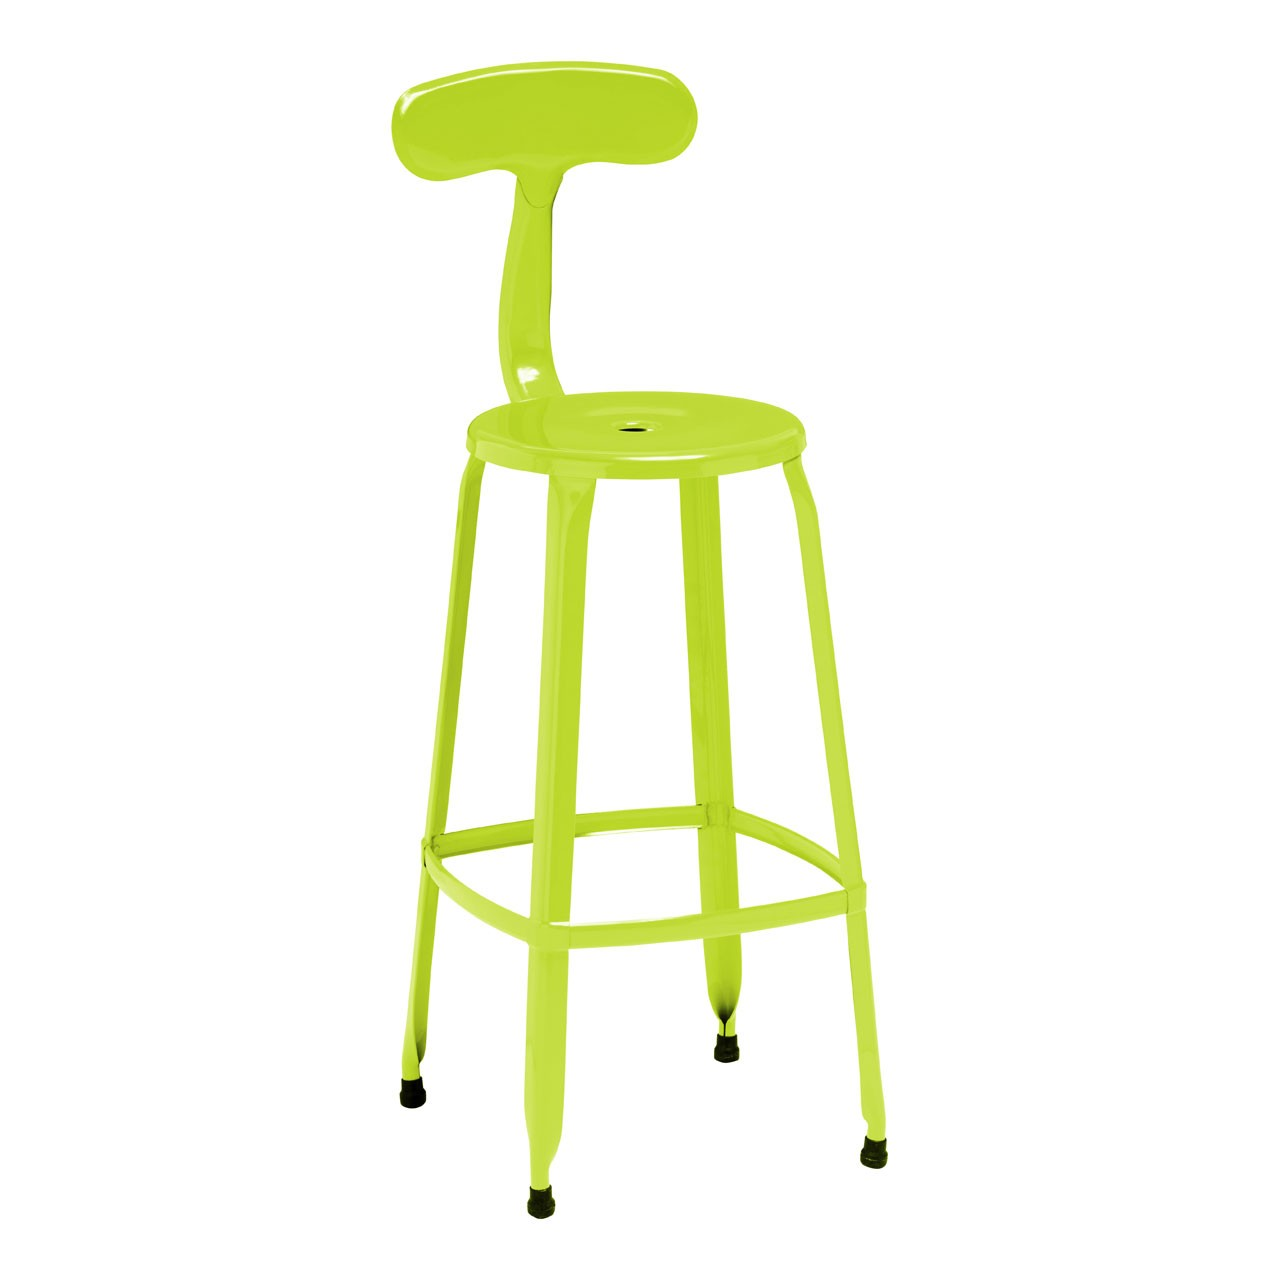 4 x Breakfast Chair Disc Bar Chair Powdr Coated Metal Lime Green